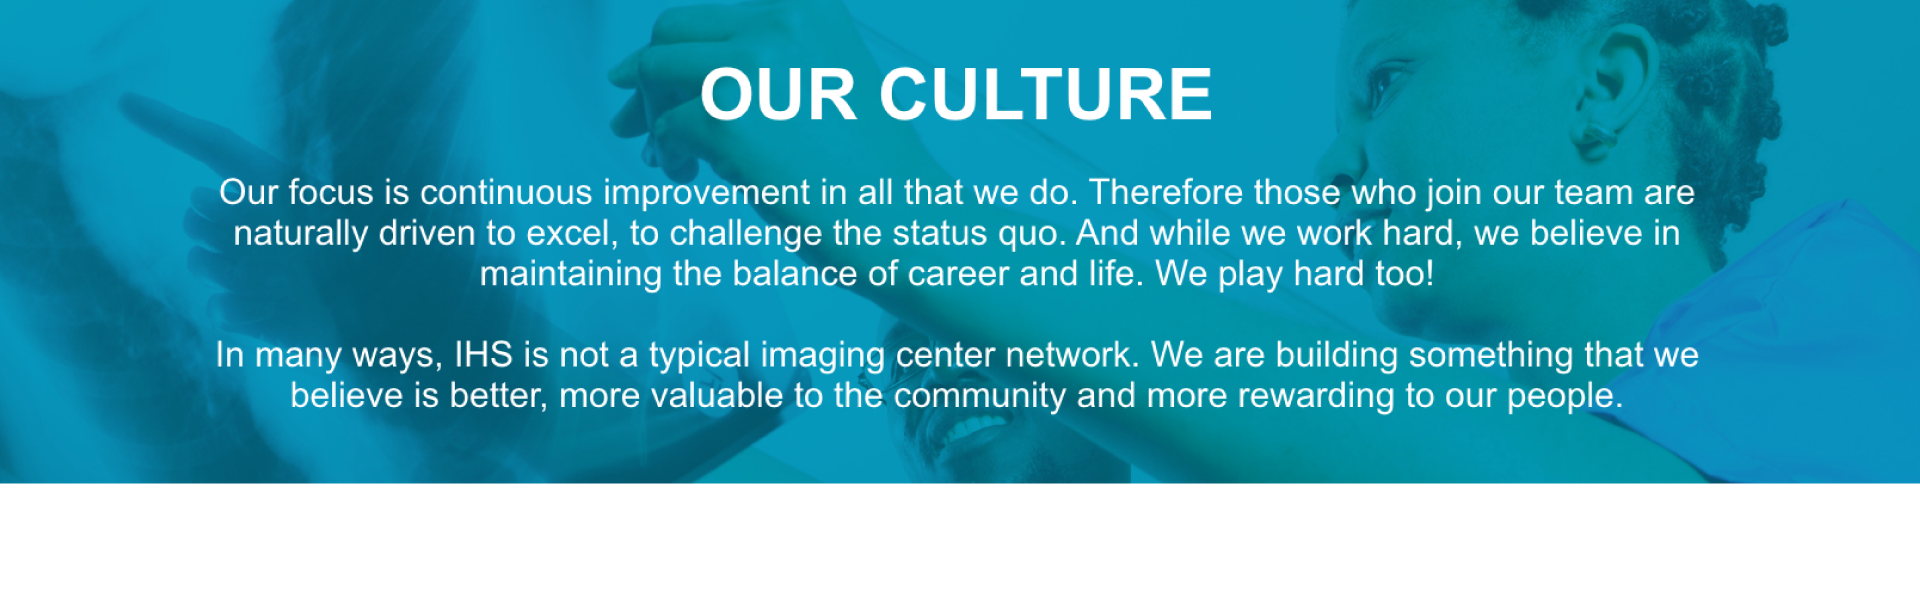 Our Culture at Imaging Healthcare Specialists